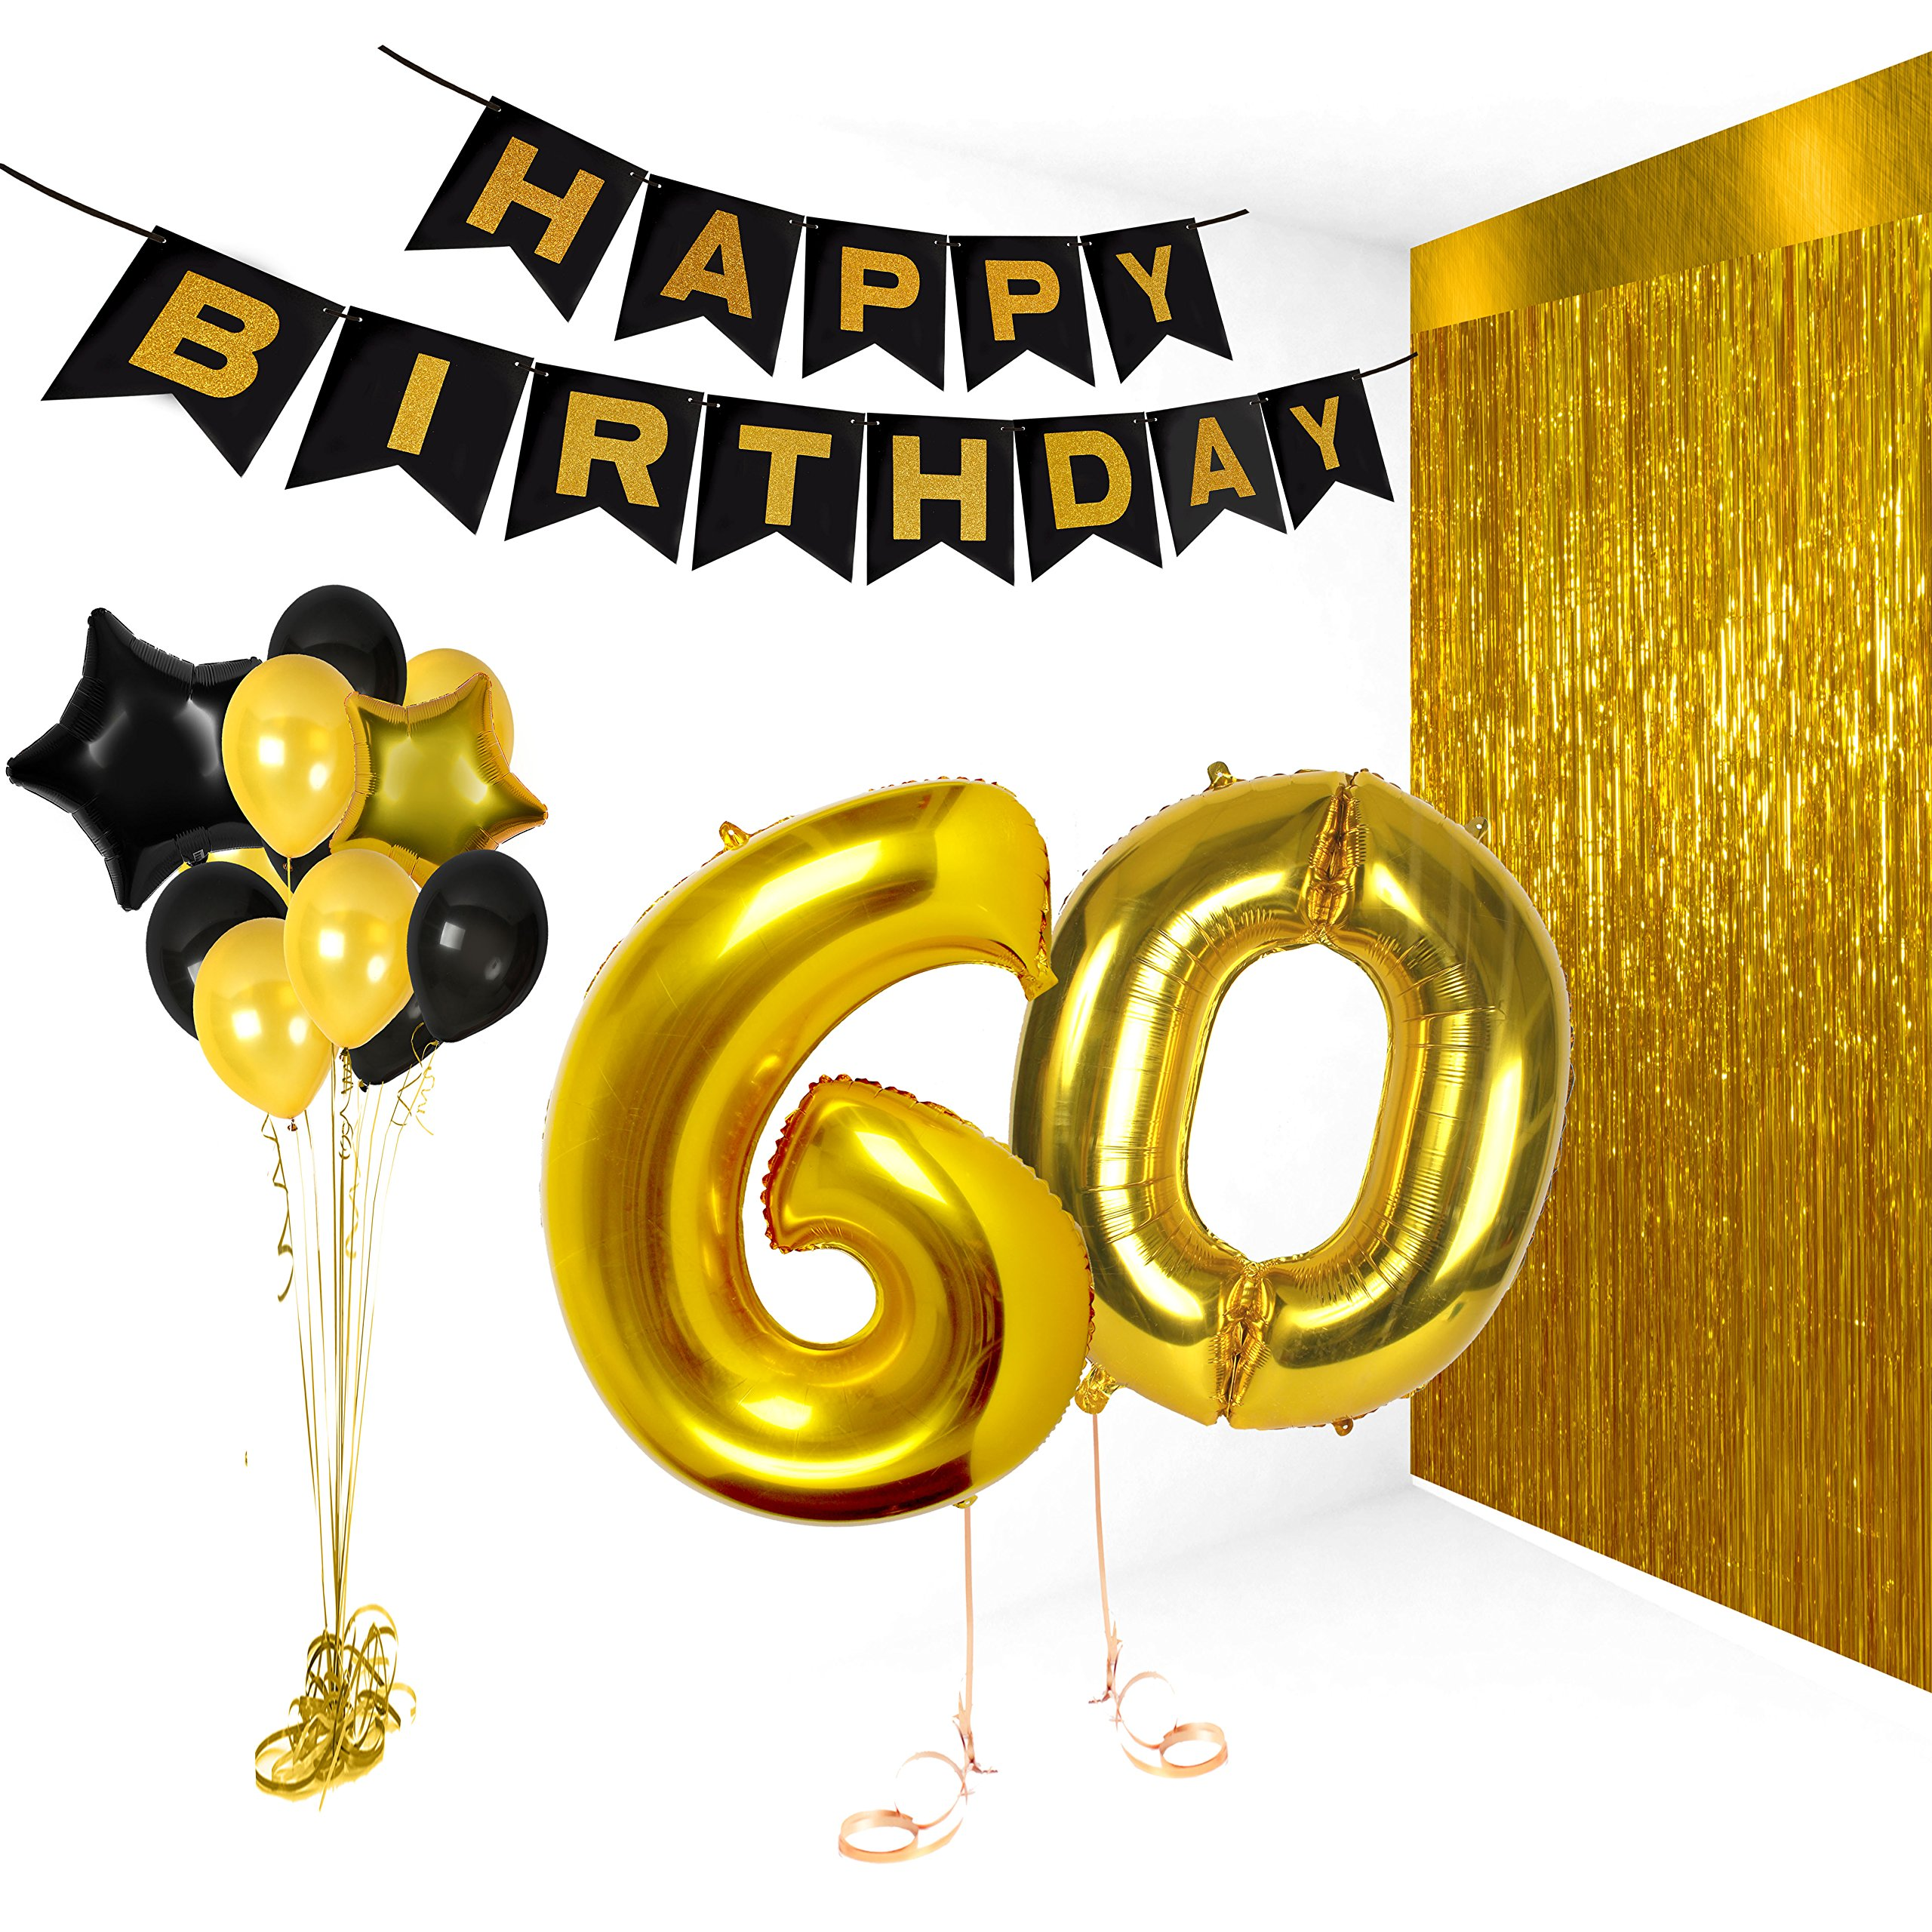 Happy 60th Birthday Party Supplies Black Banner Gold Black Balloons Large 60 Foil Number Balloon Black Gold Foil Star Balloon Gold Metallic Tinsel Curtain Photo Booth Props Unique Party Supplies